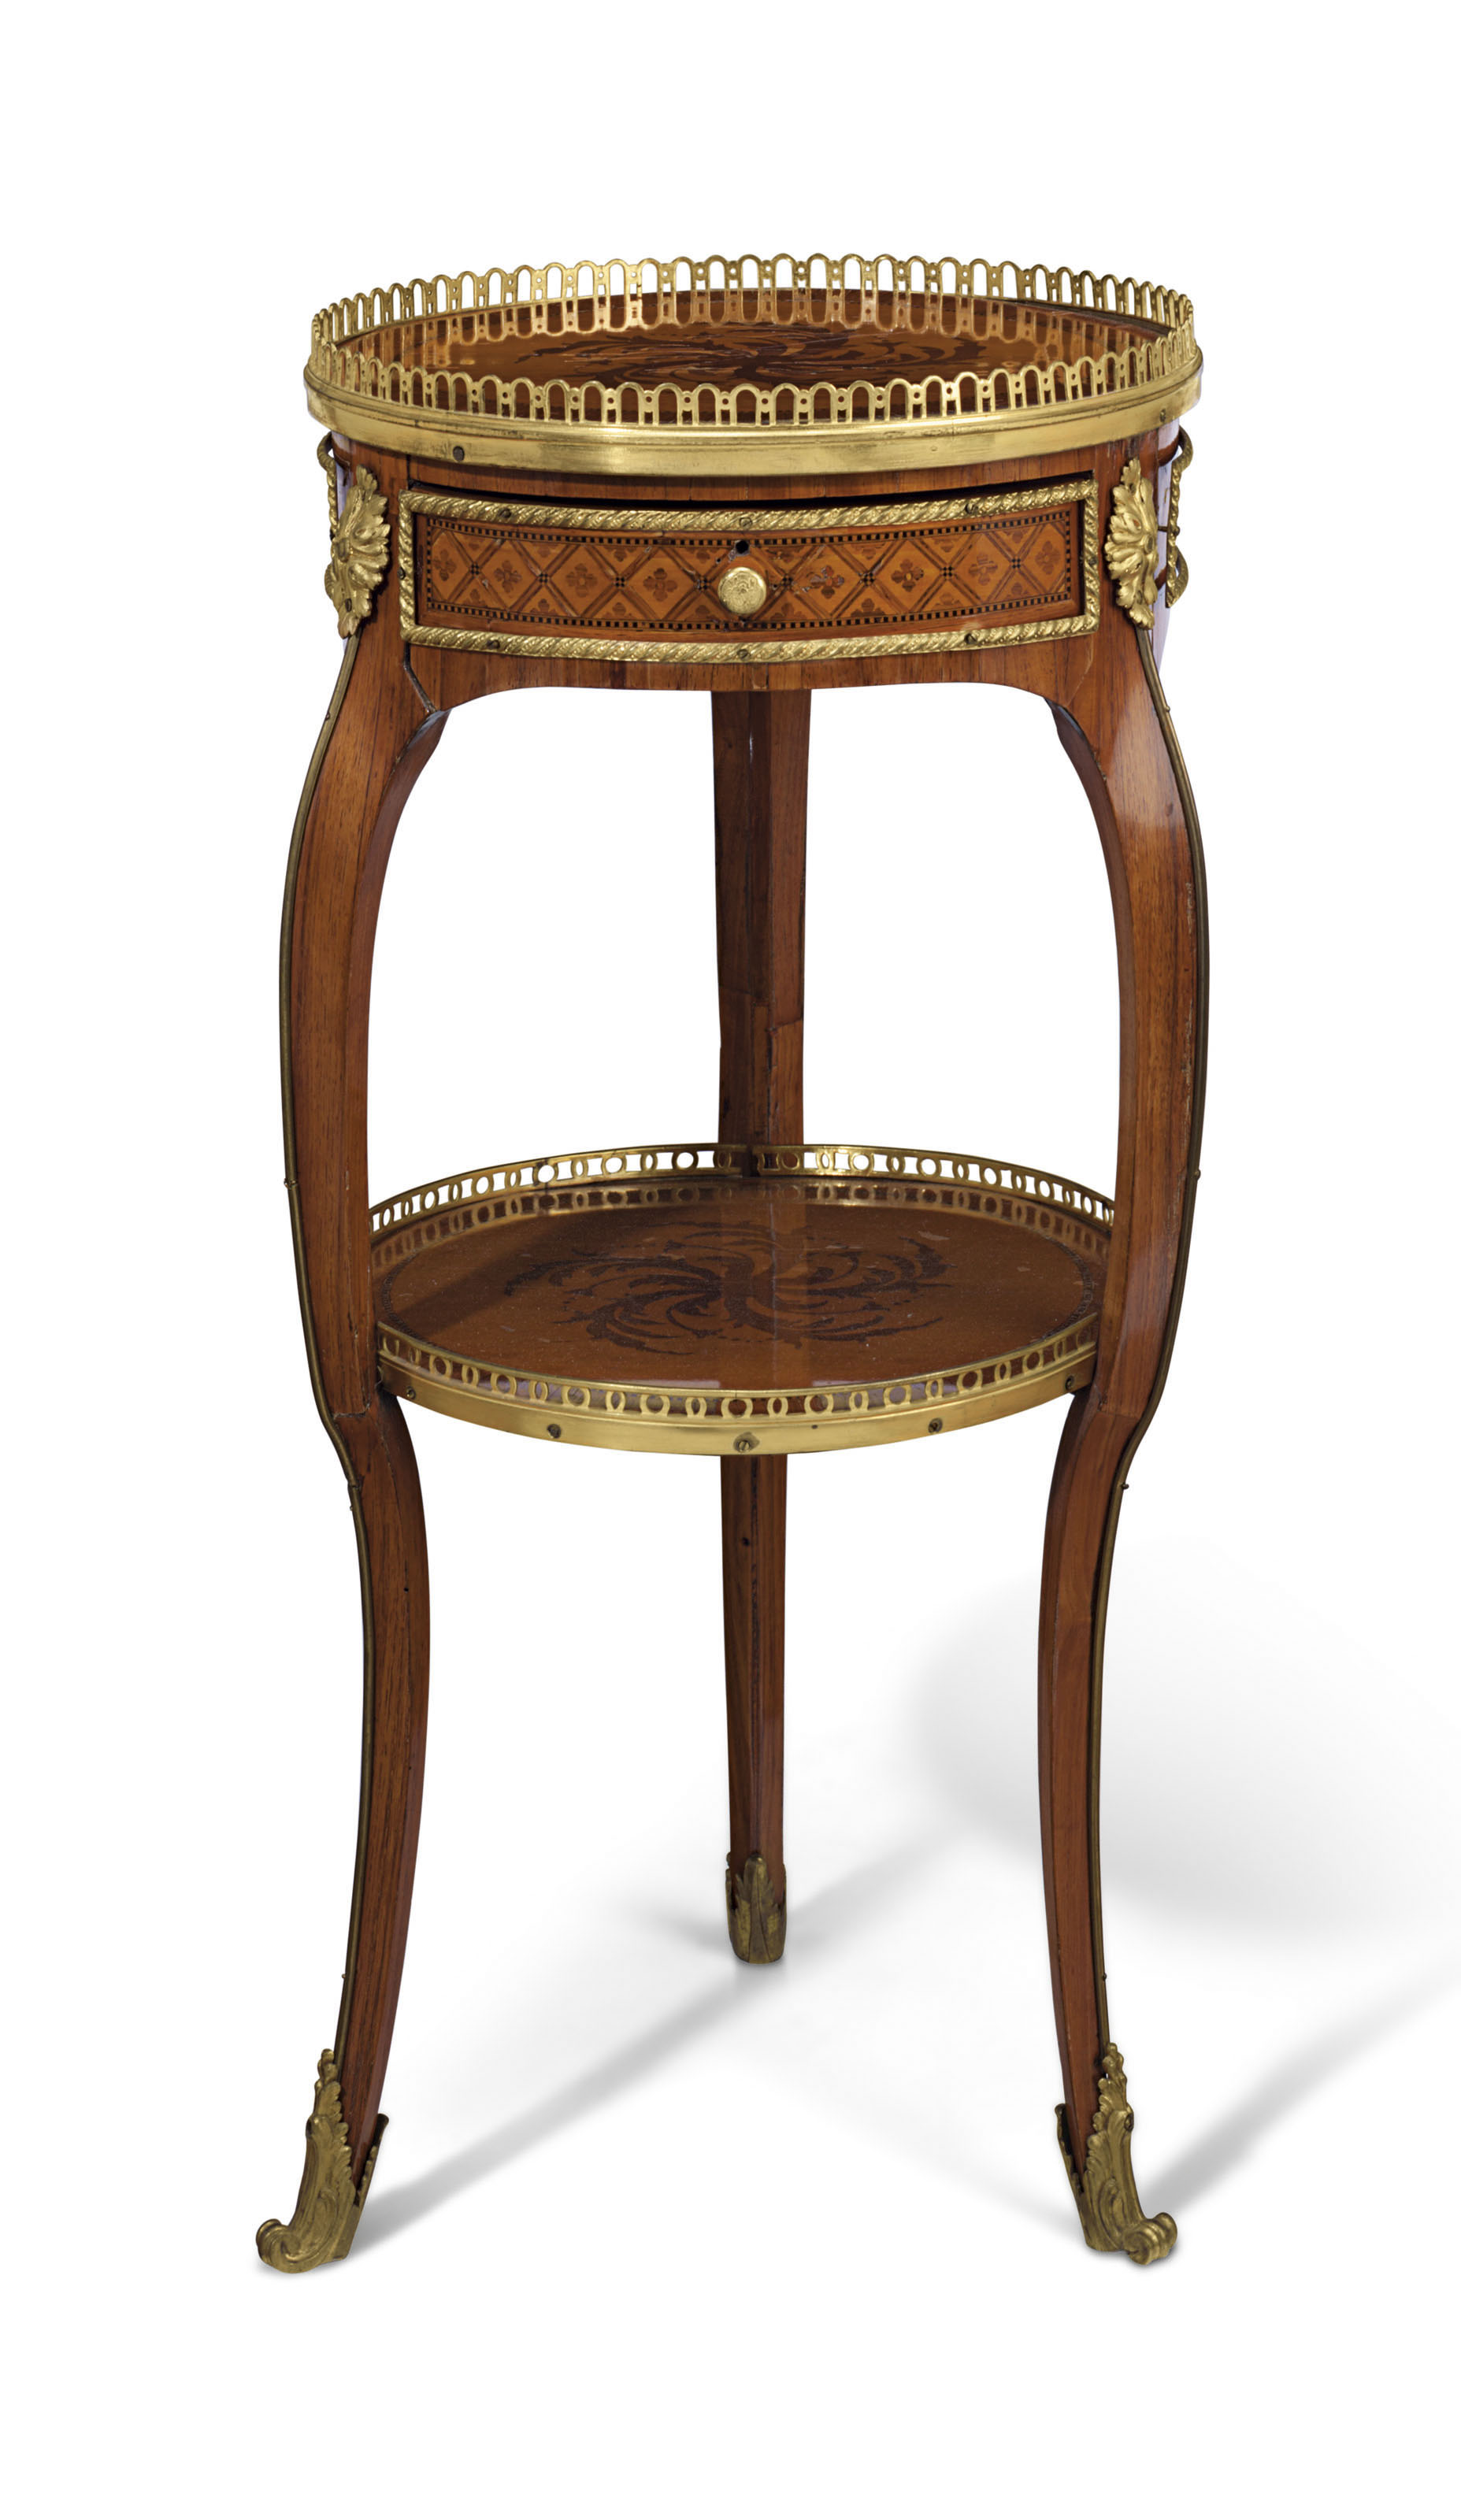 A LATE LOUIS XV ORMOLU-MOUNTED CITRONNIER, TULIPWOOD AND AMARANTH TABLE EN CHIFFONNIERE